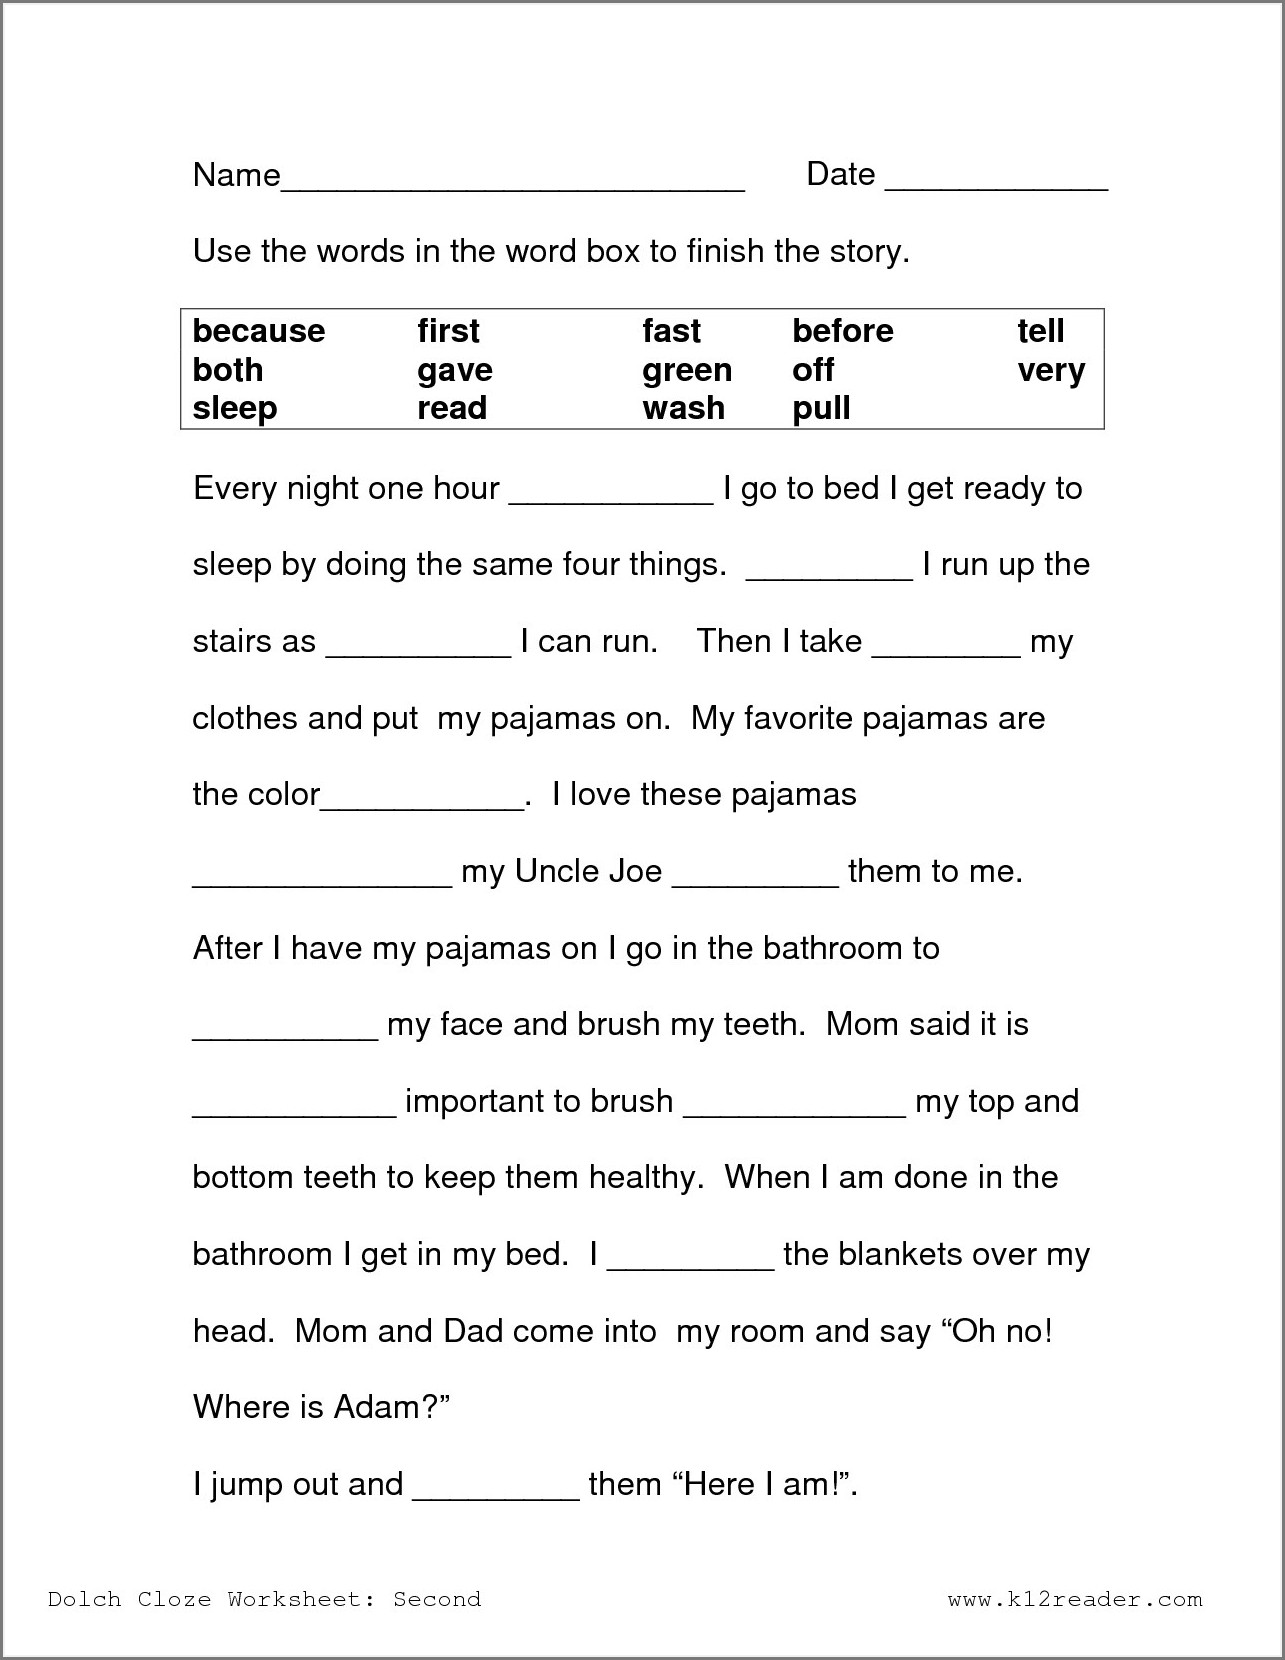 Free Printable Worksheet For 3rd Grade